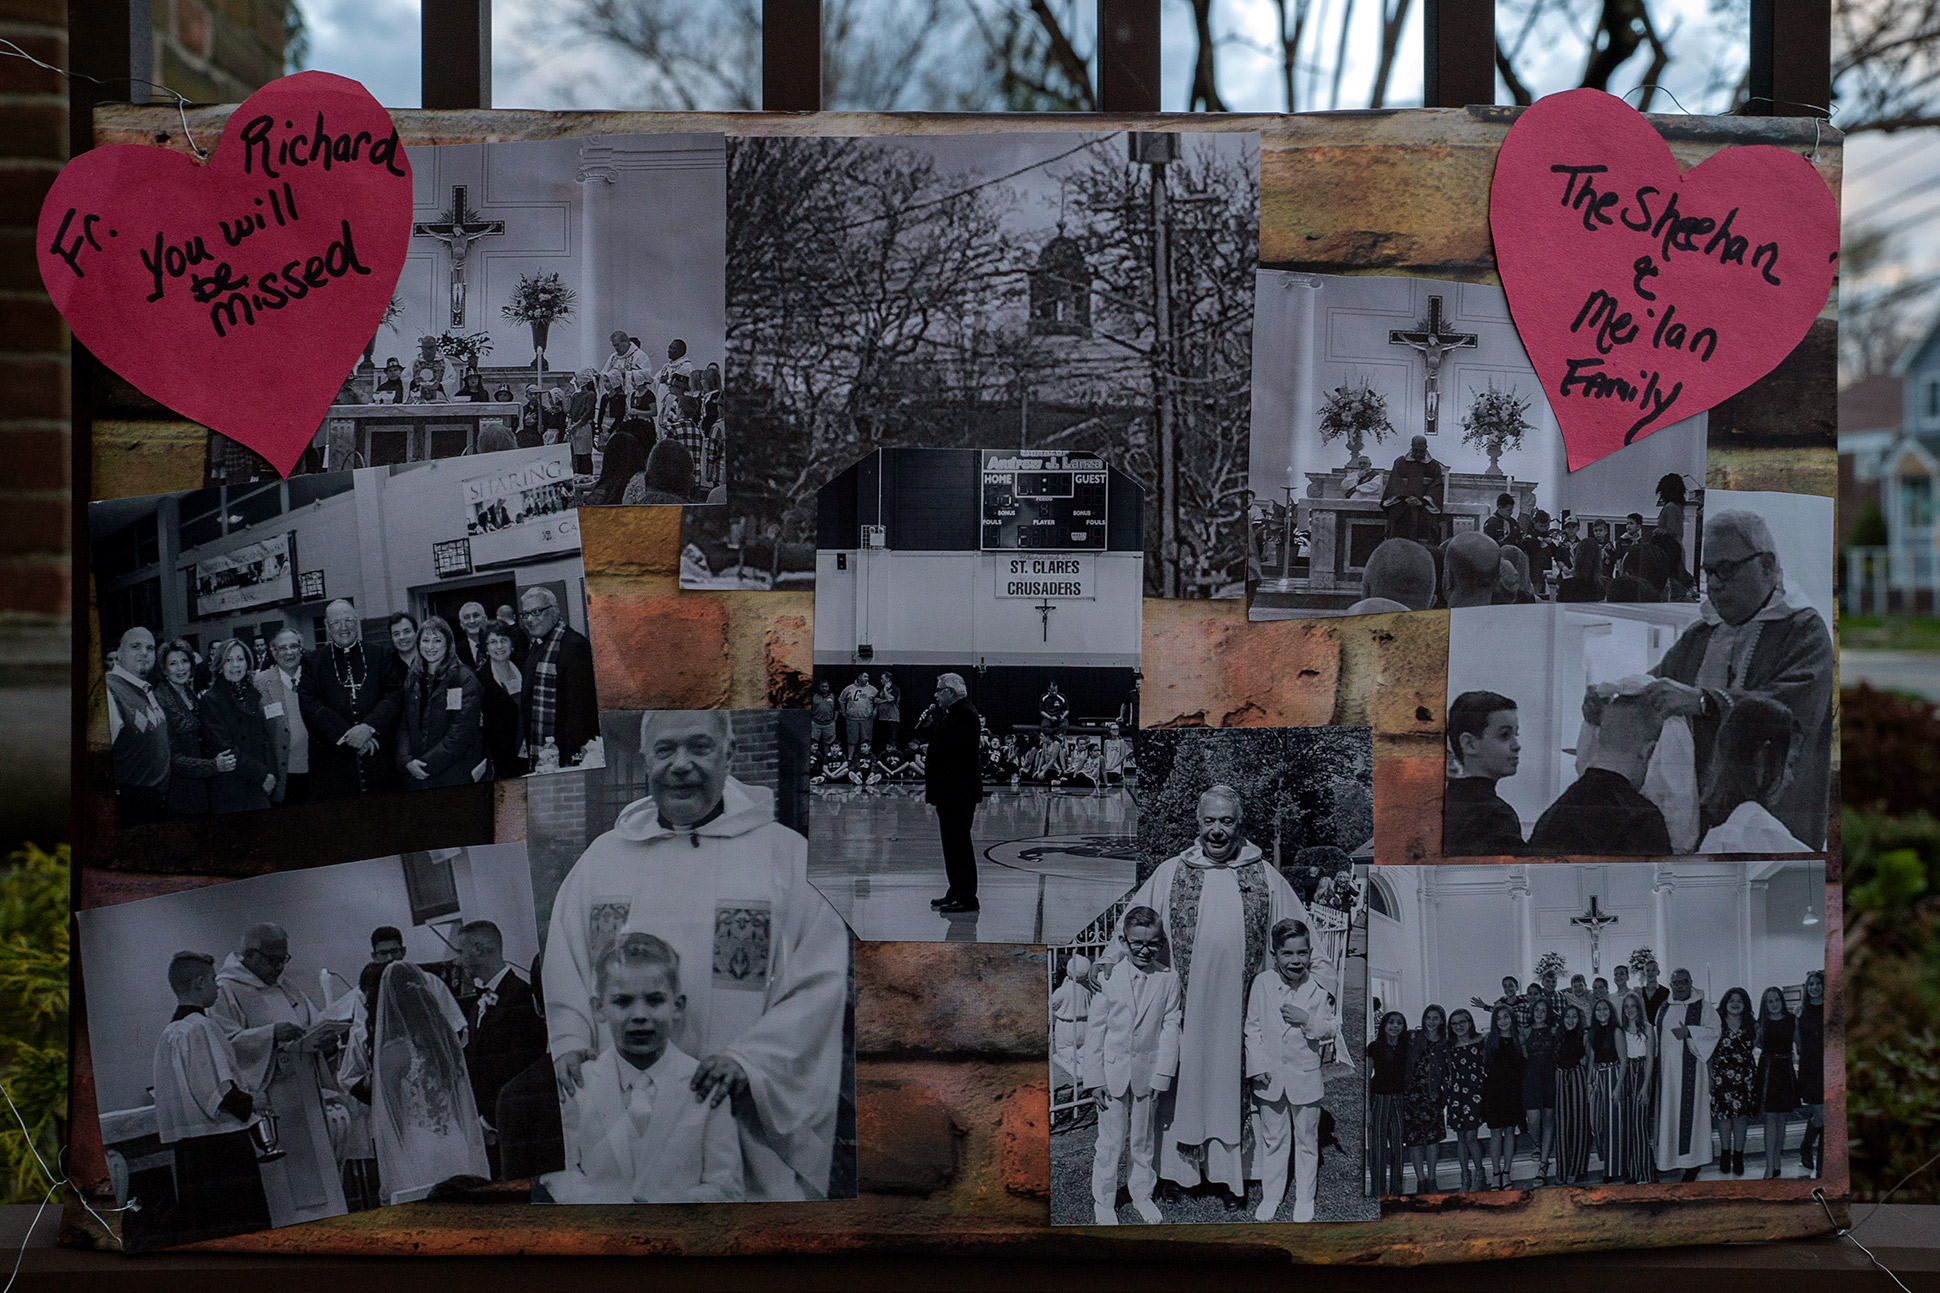 A of collage photographs left at a memorial for Monsignor Richard Guastella, who died from Covid-19 outside the doors of St. Clare Catholic Church in Staten Island, N.Y., on April 10, 2020.